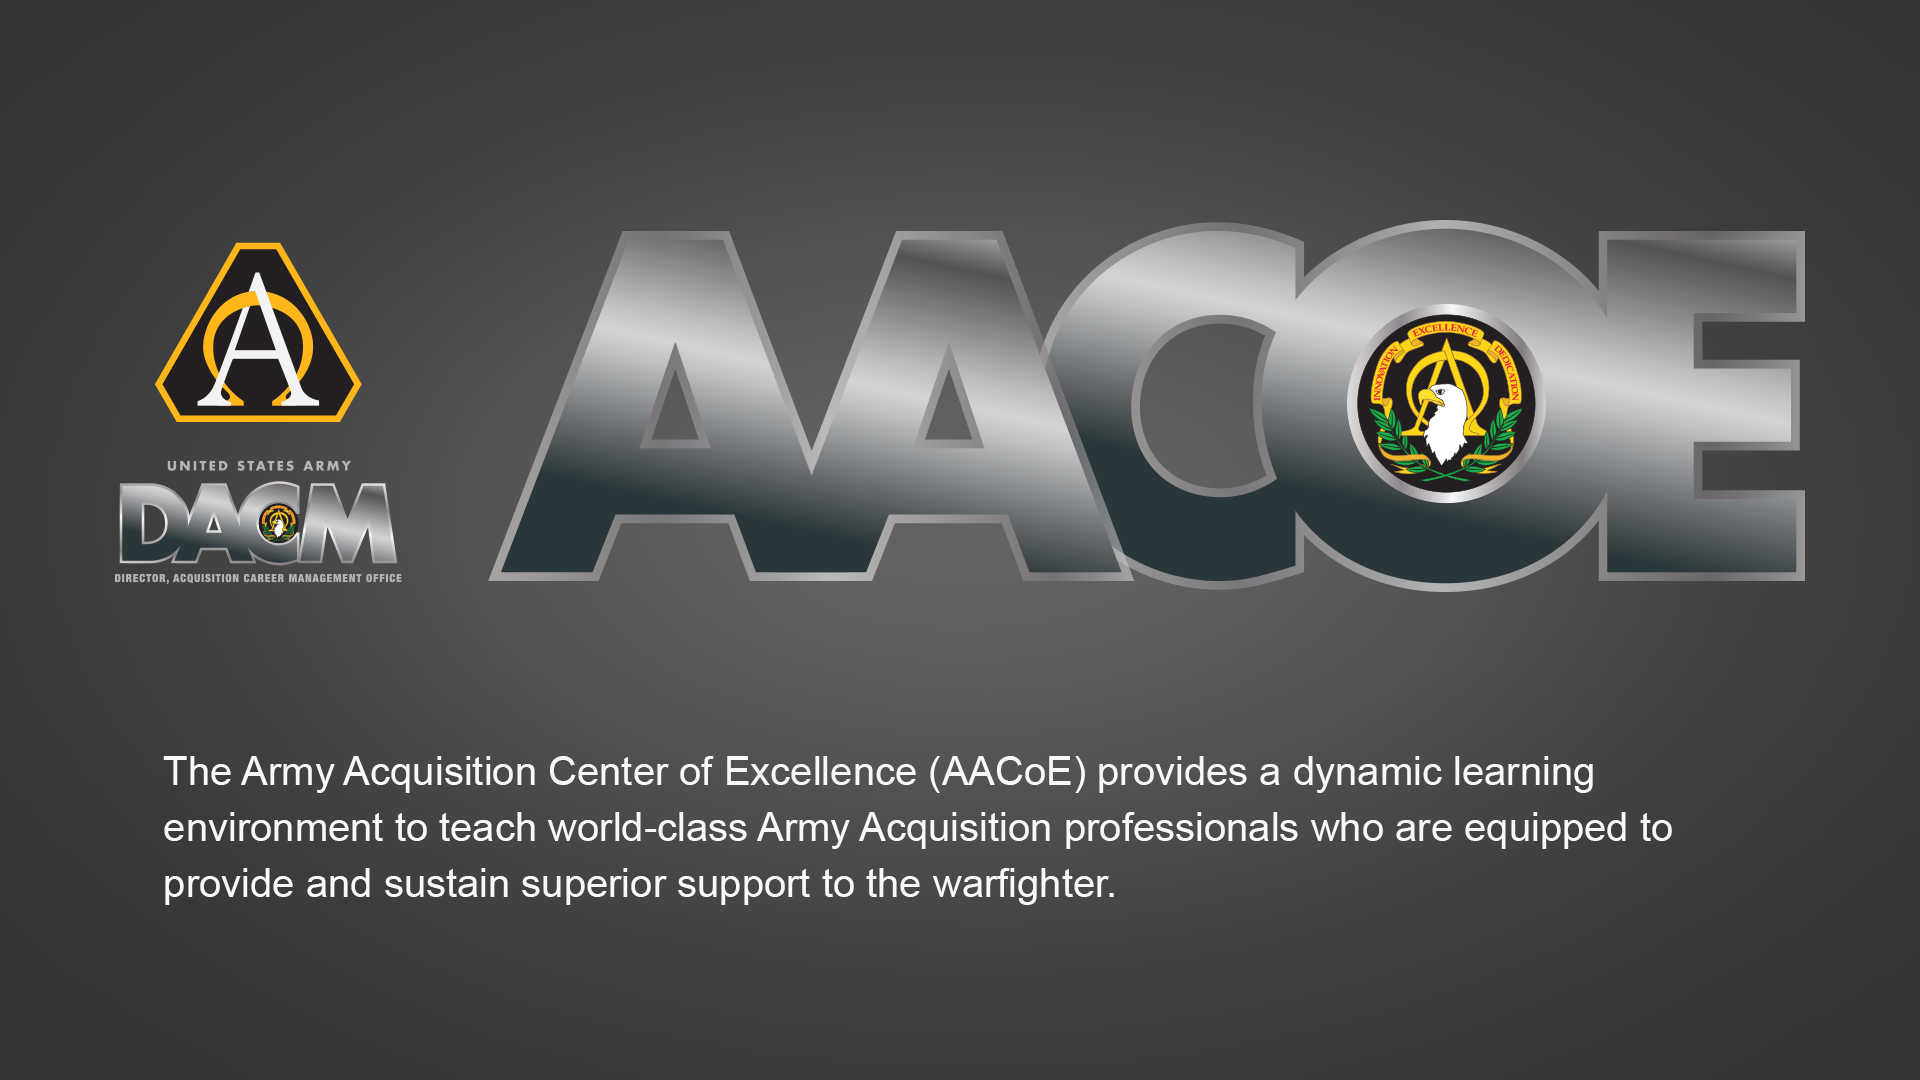 The Army Acquisition Center of Excellence (AACoE) provides a dynamic learning environment to teach world-class Army Acquisition professionals who are equipped to provide and sustain superior support to the warfighter.